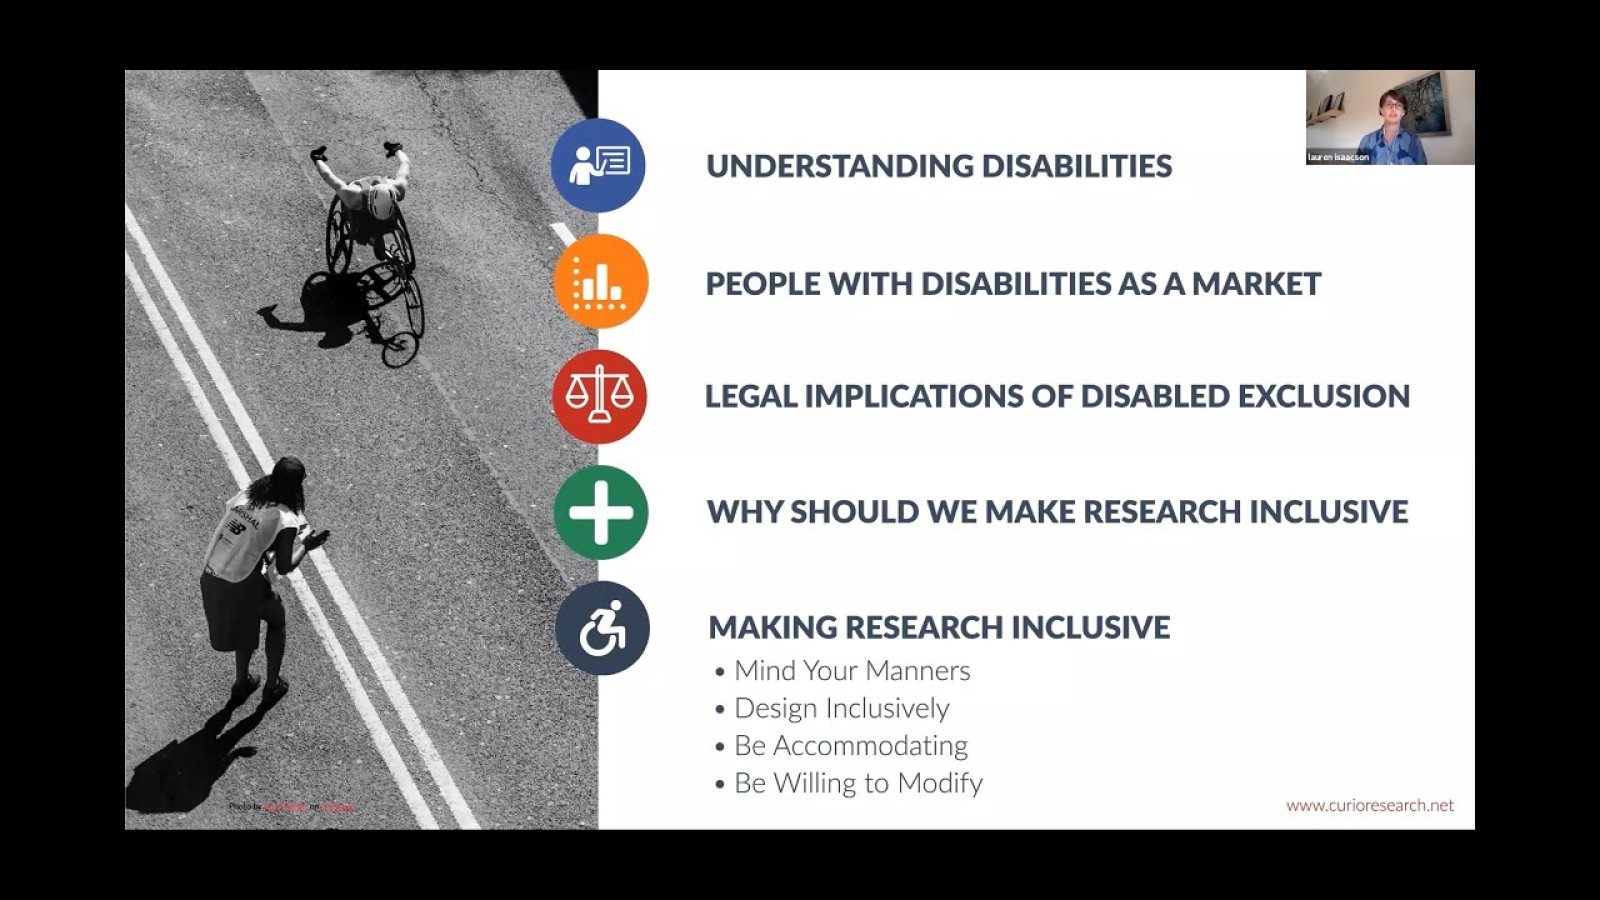 Inclusive Research: Making research accessible to people with disabilities